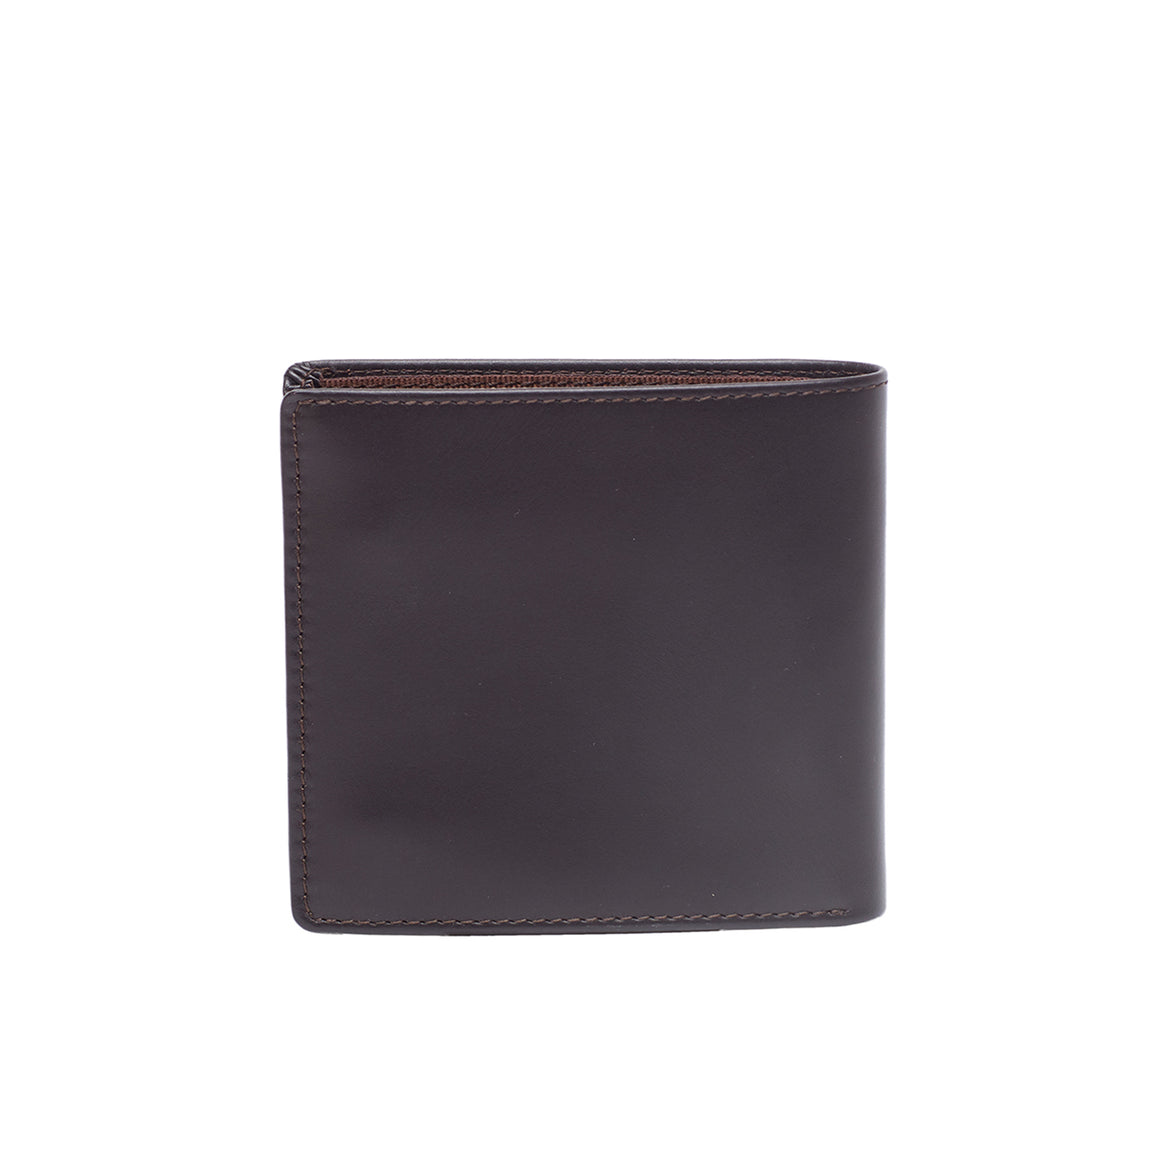 WT 0025 - TOHL BRERA MEN'S WALLET - DARK BROWN